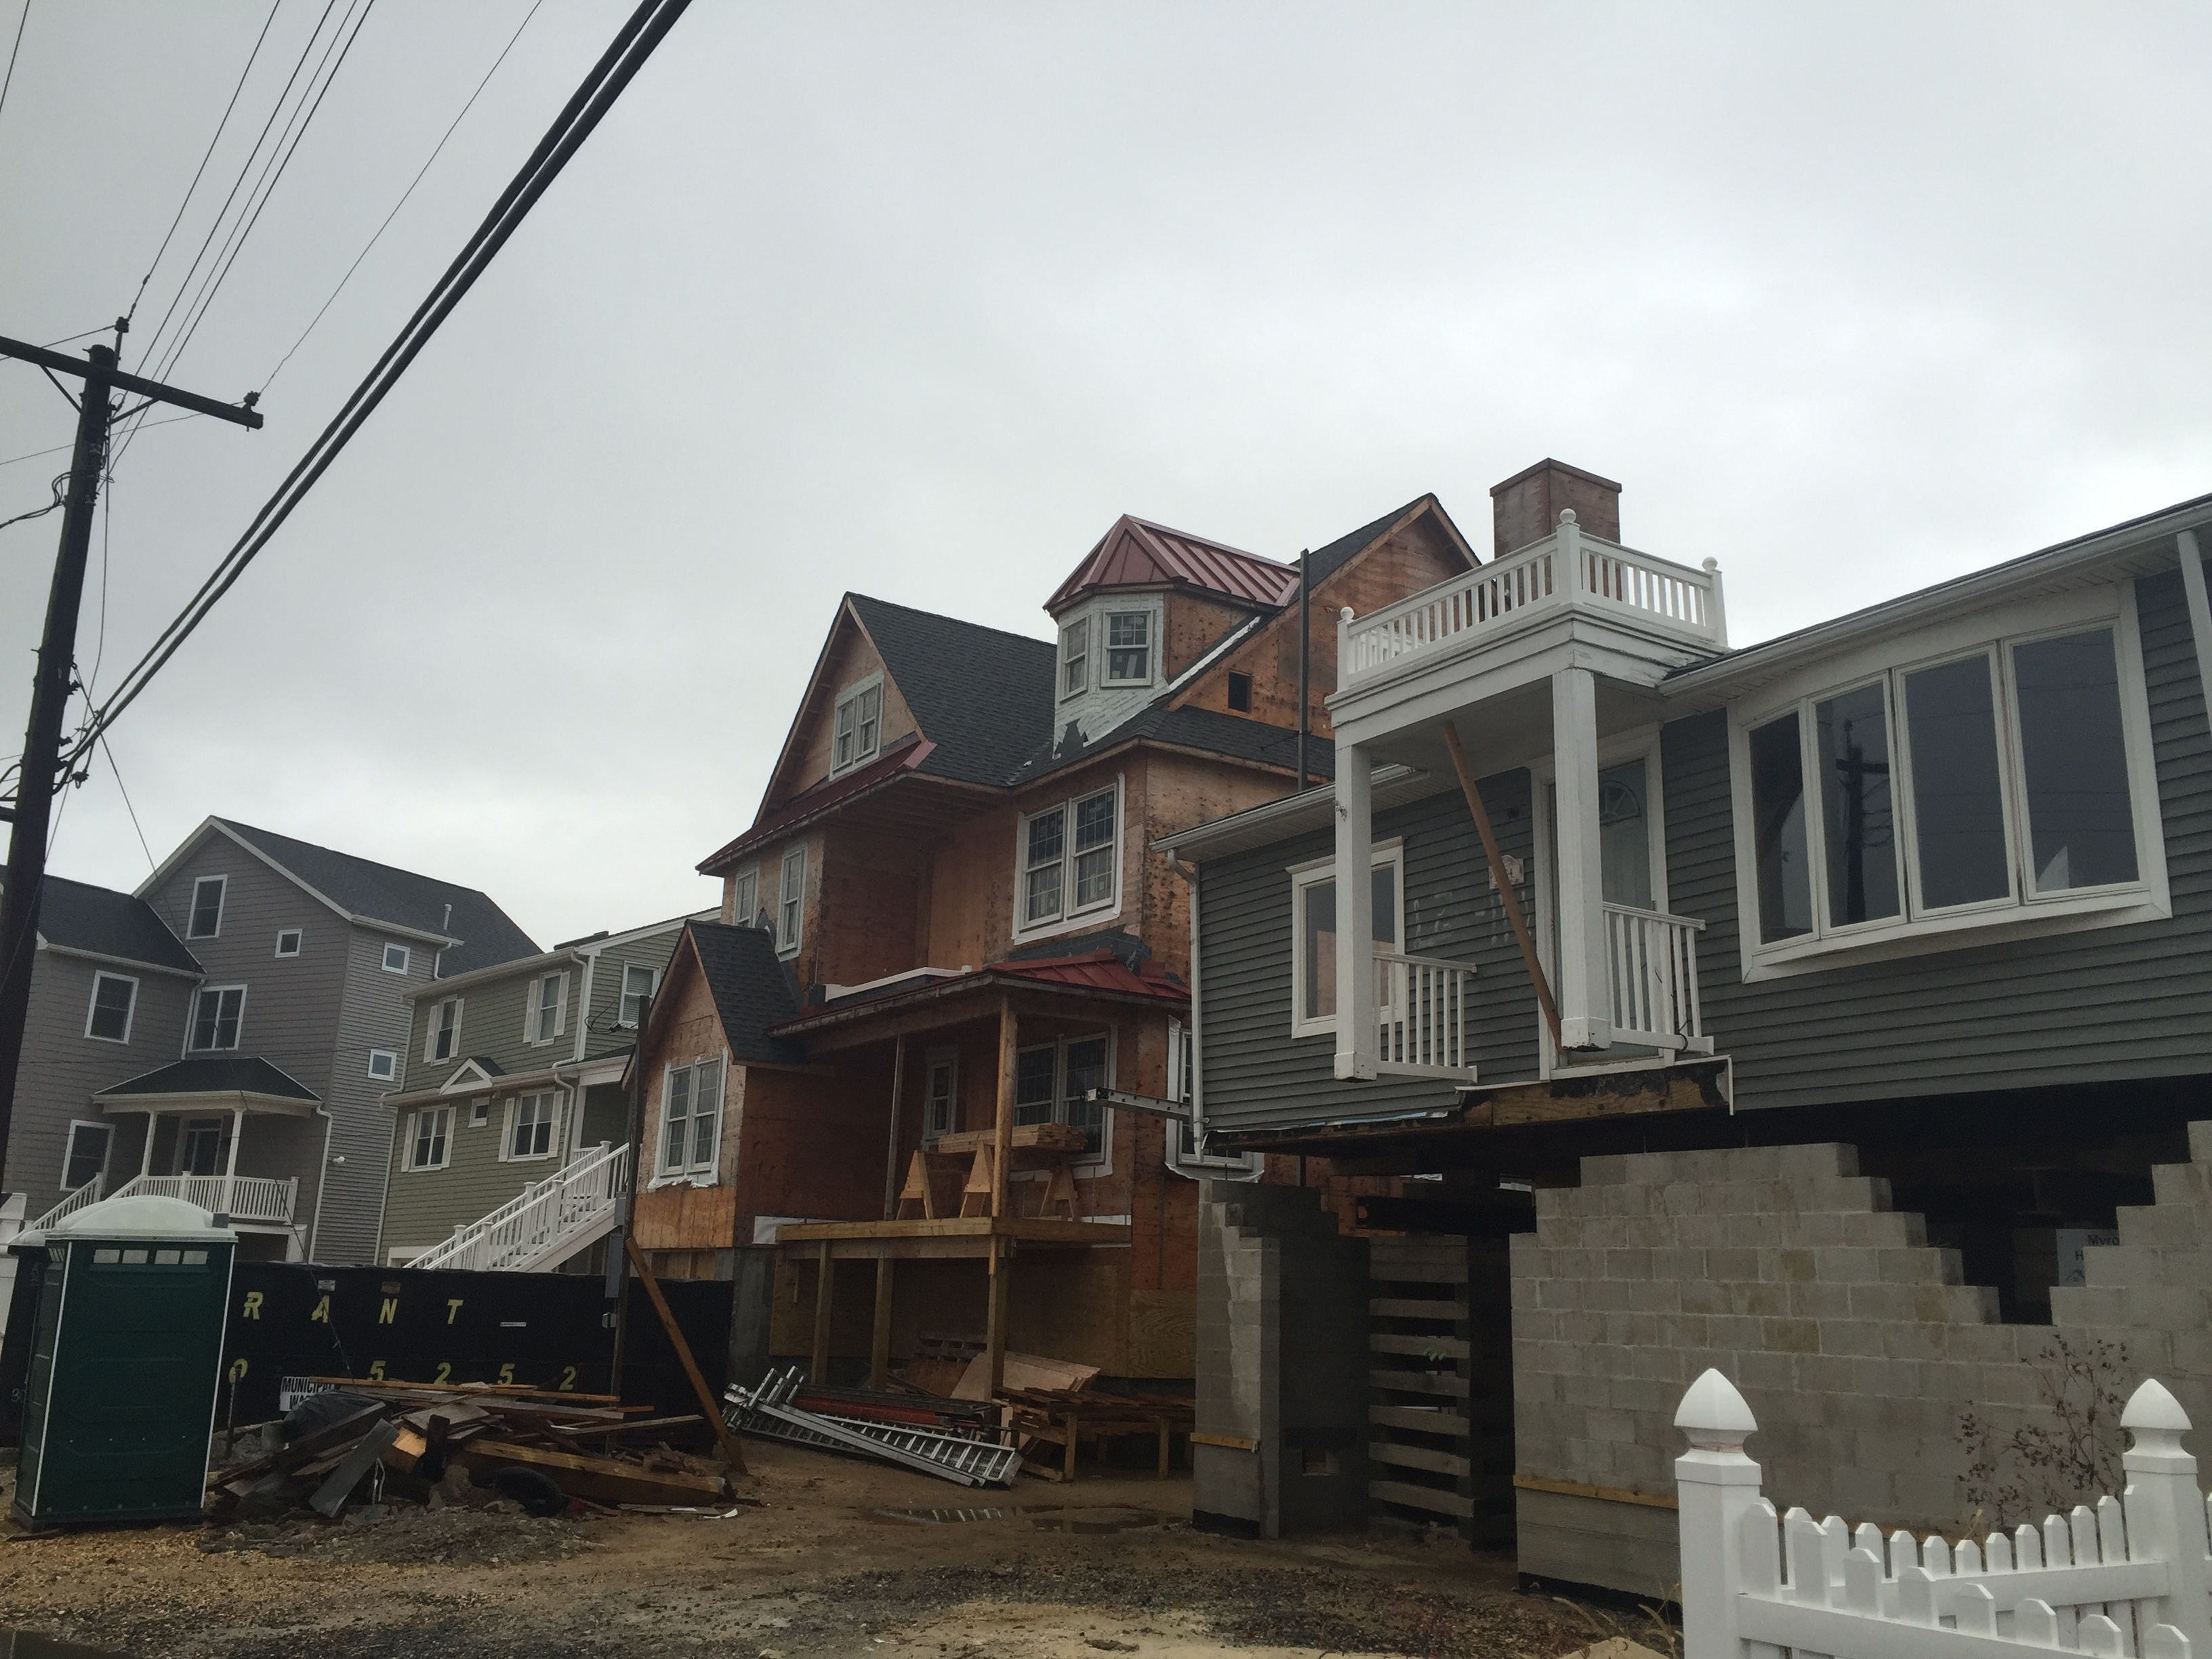 Rebuilding in Brick's Normandy Beach neighborhood, Oct. 28, 2015. (Photo: Daniel Nee)